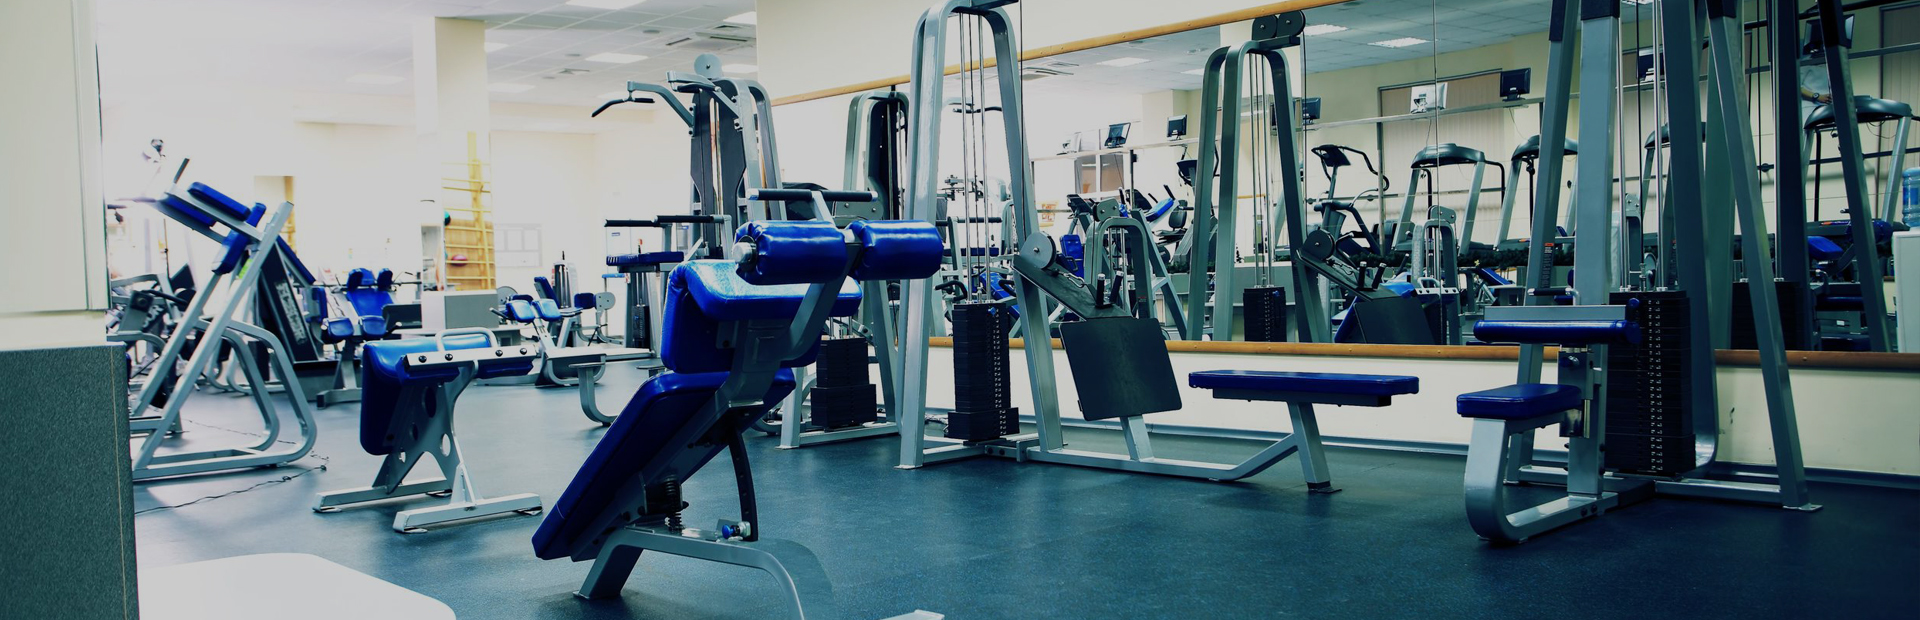 HFE delivers industry leading corporate fitness training